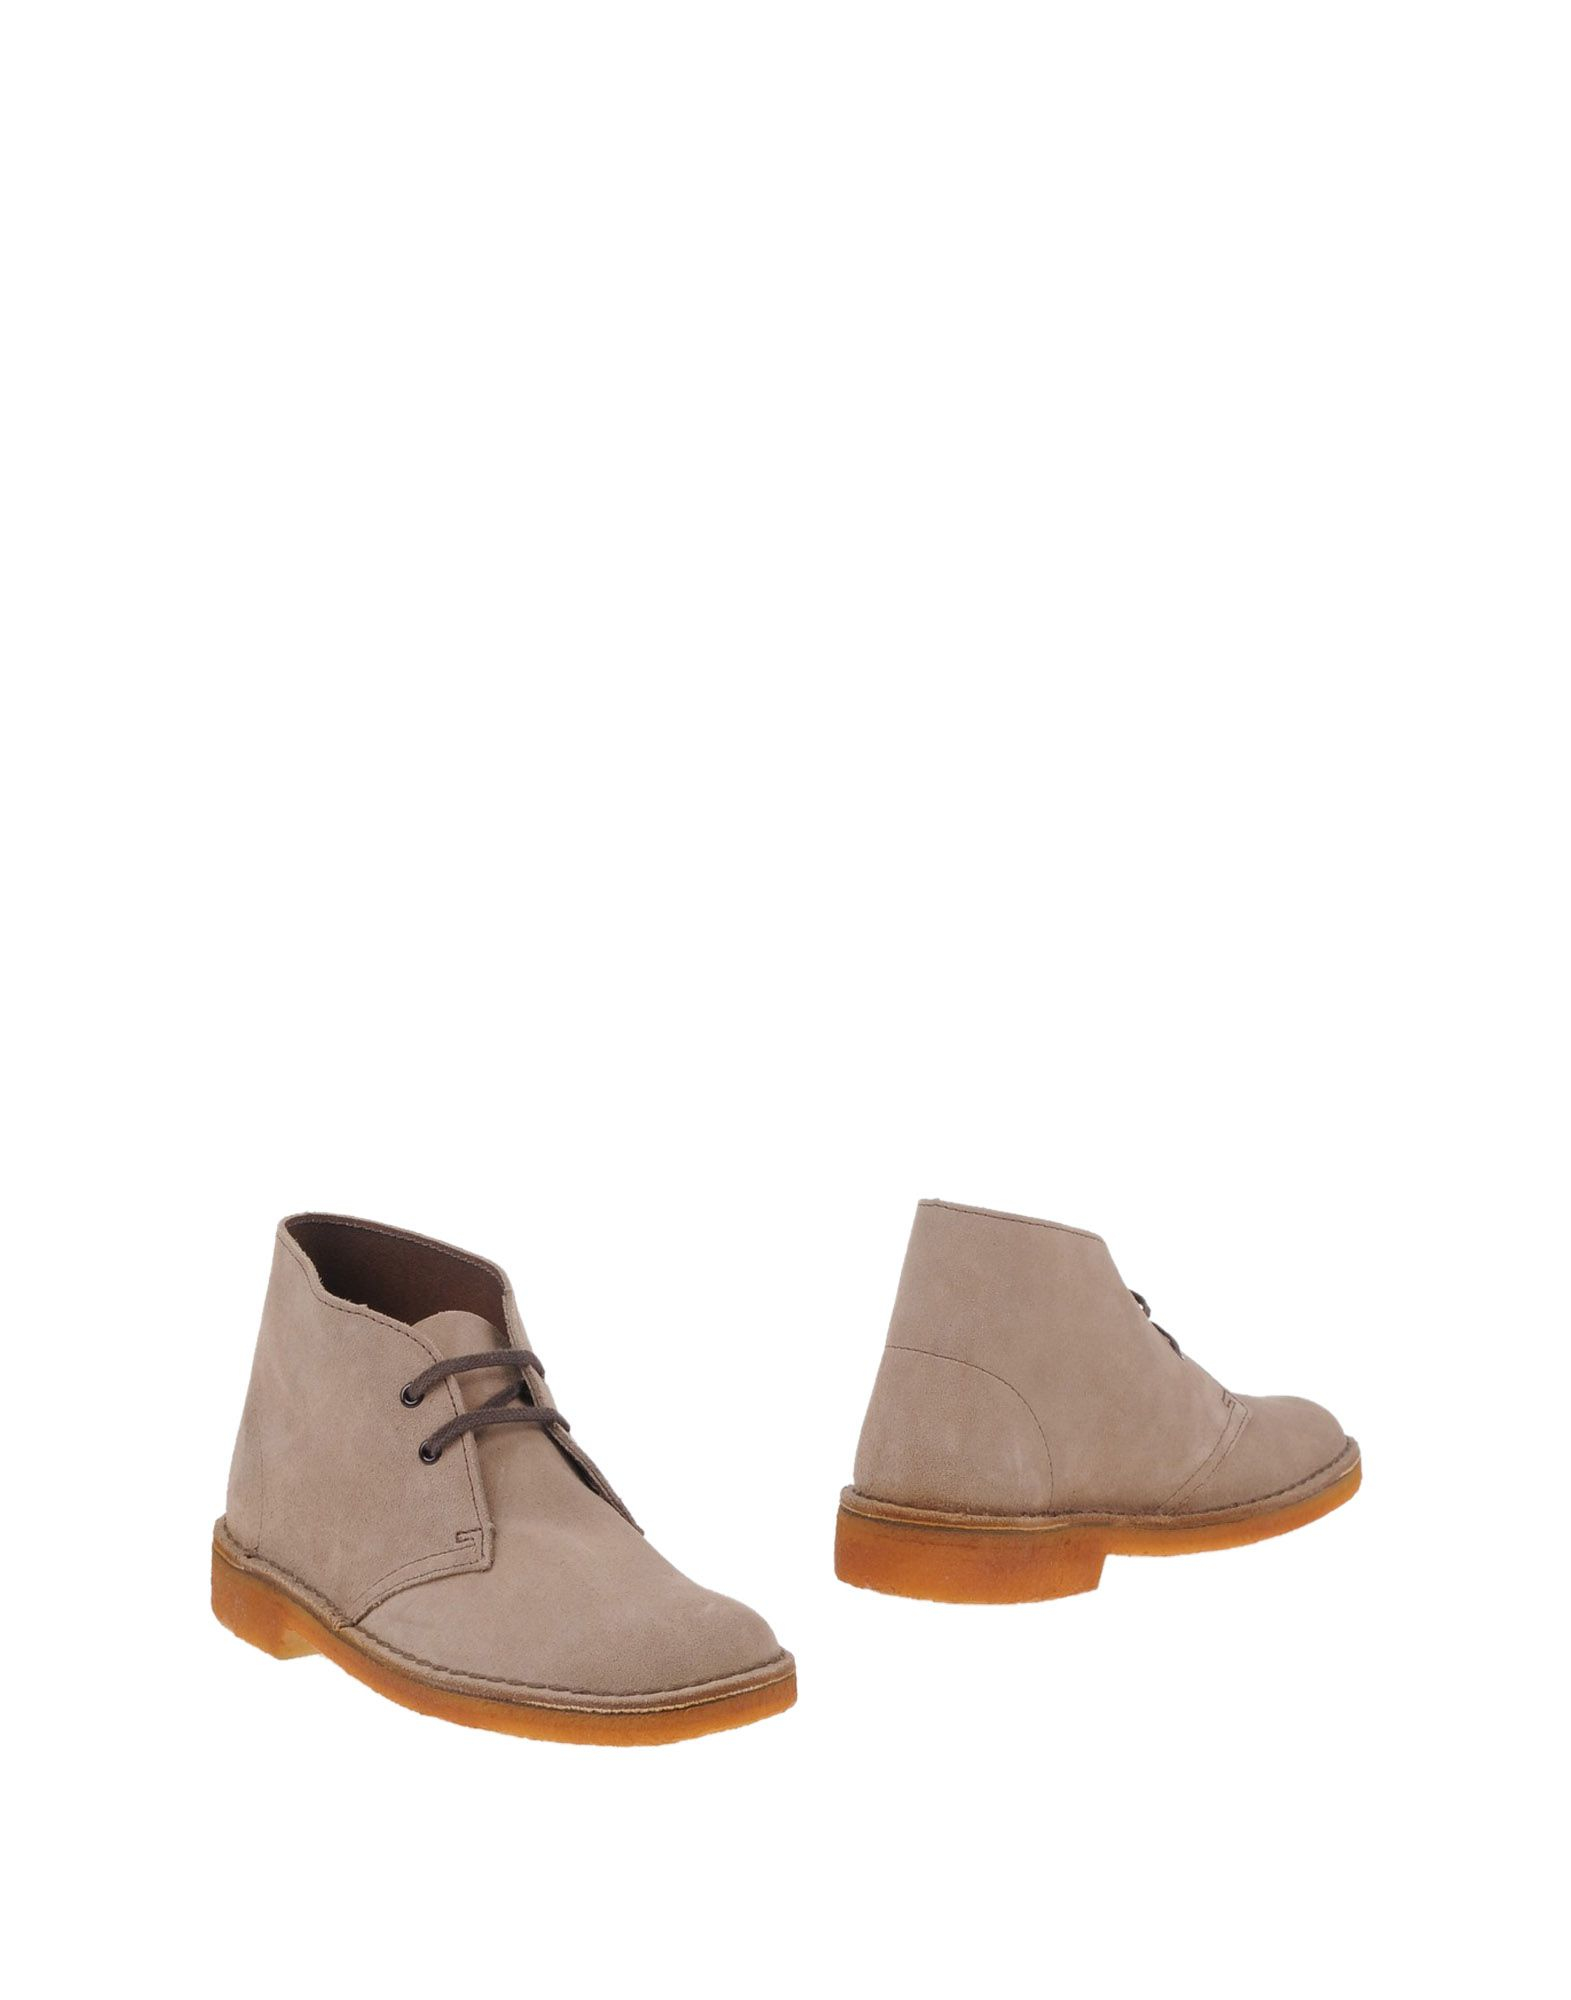 clarks ankle boots in beige sand lyst